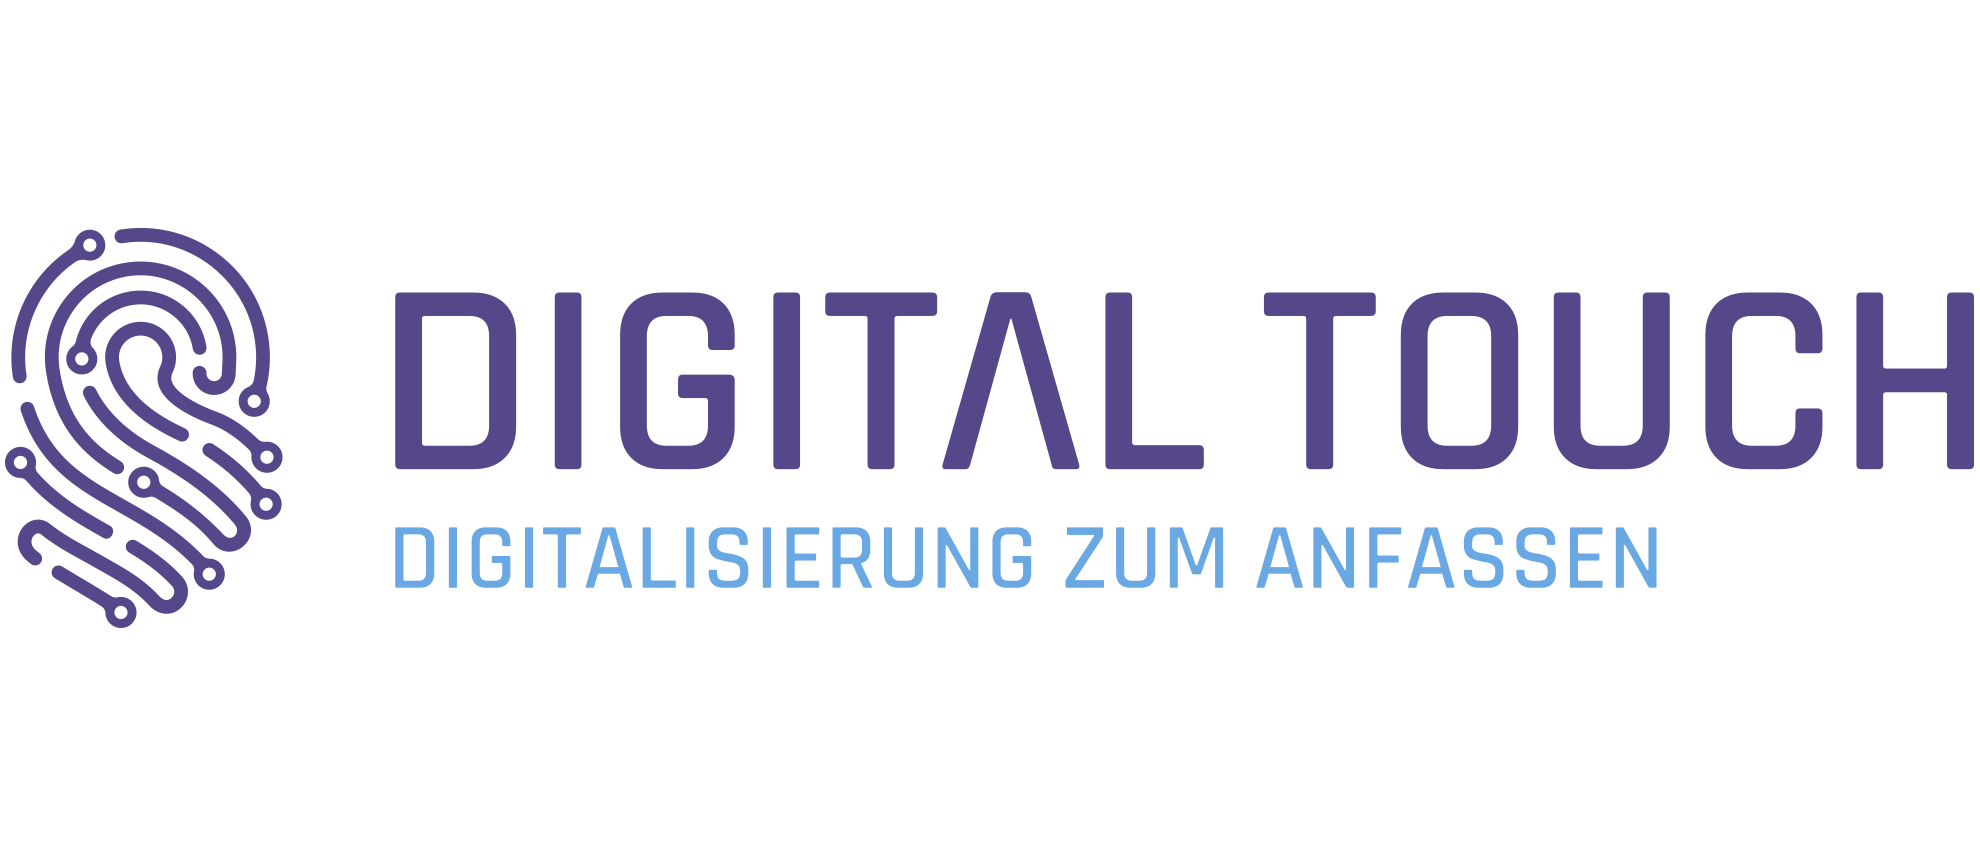 Digital Touch GmbH